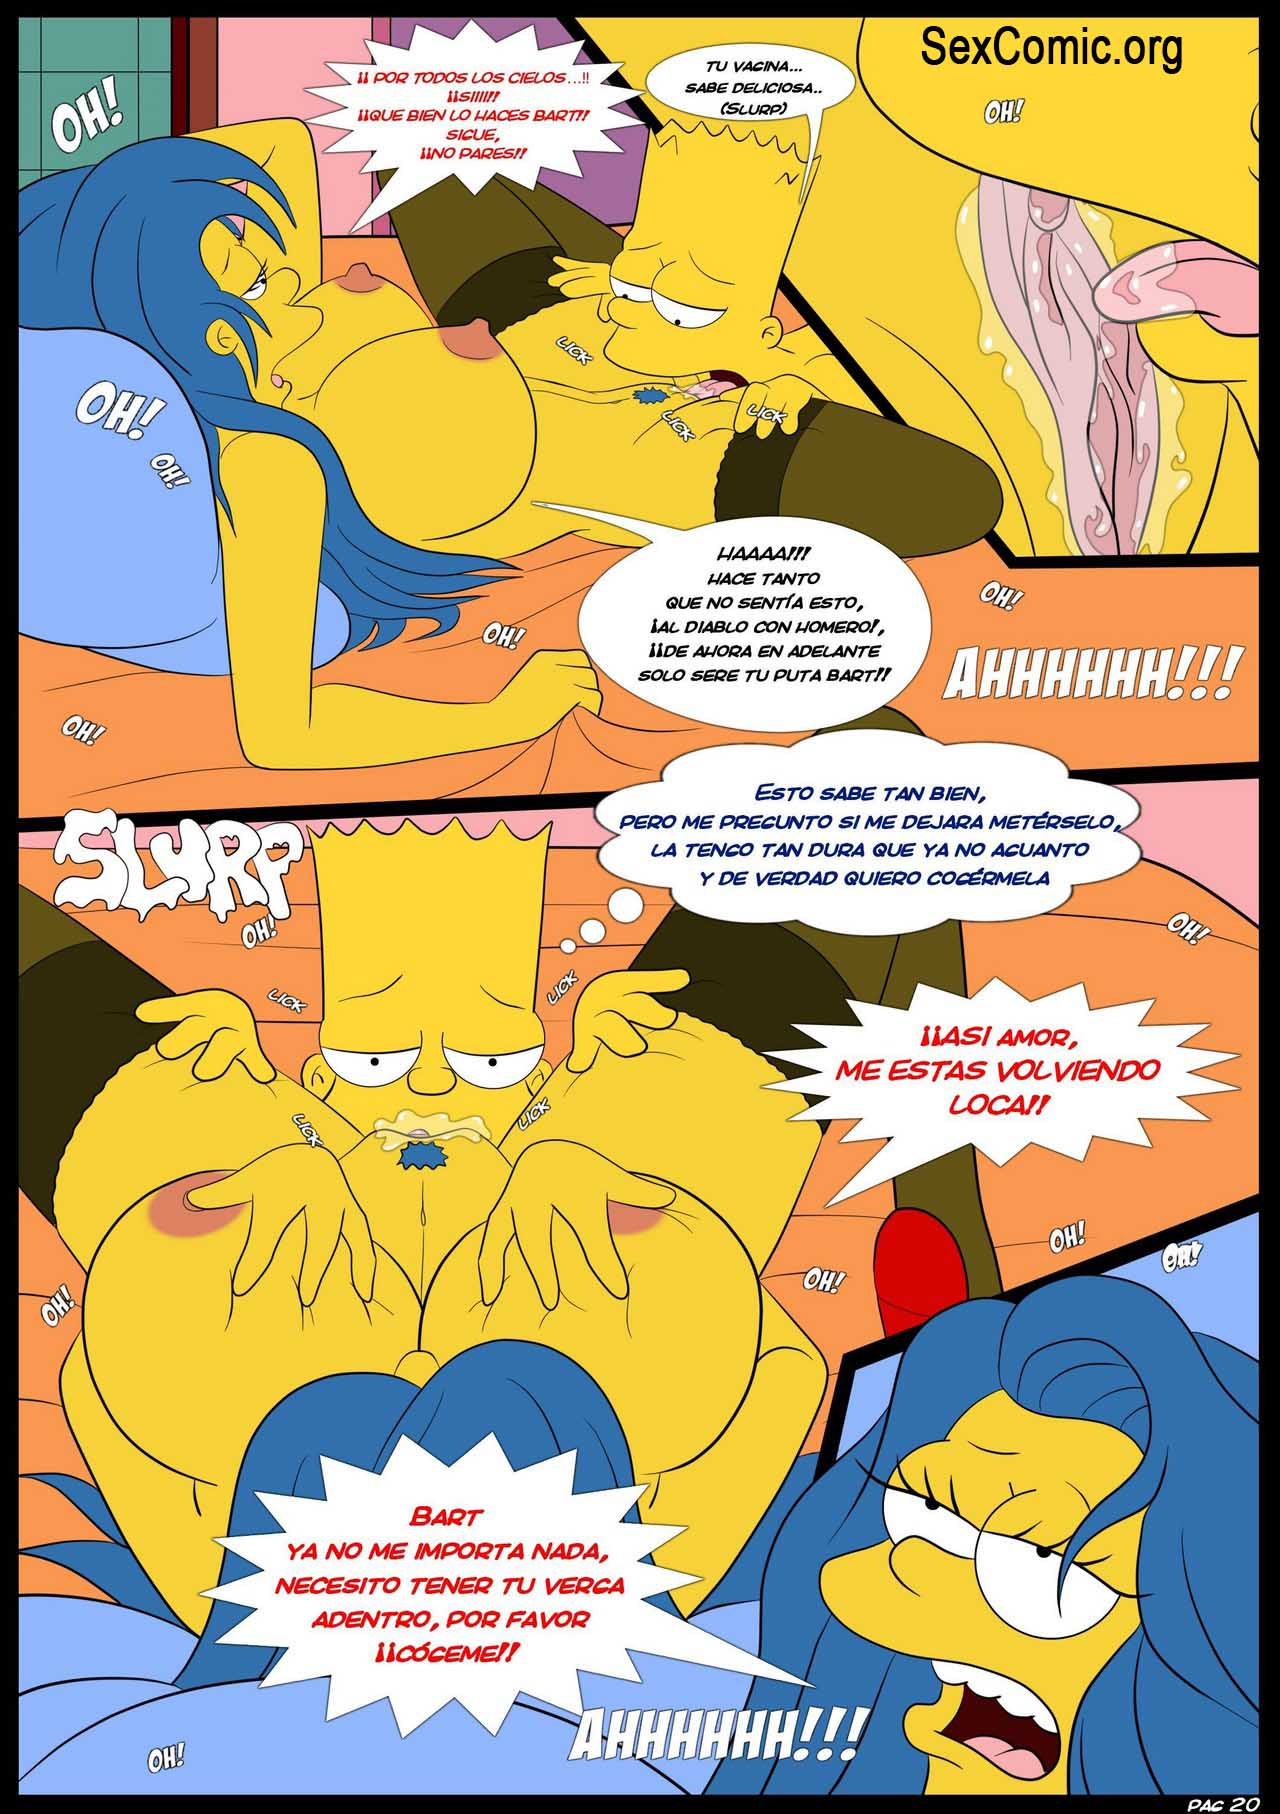 Los Simpsons xxx -incesto-bart-march-follando-cogiendo-sexo-desnuda-video-historieta-comic-los-simpsons-porno-follando-con-mama (21)